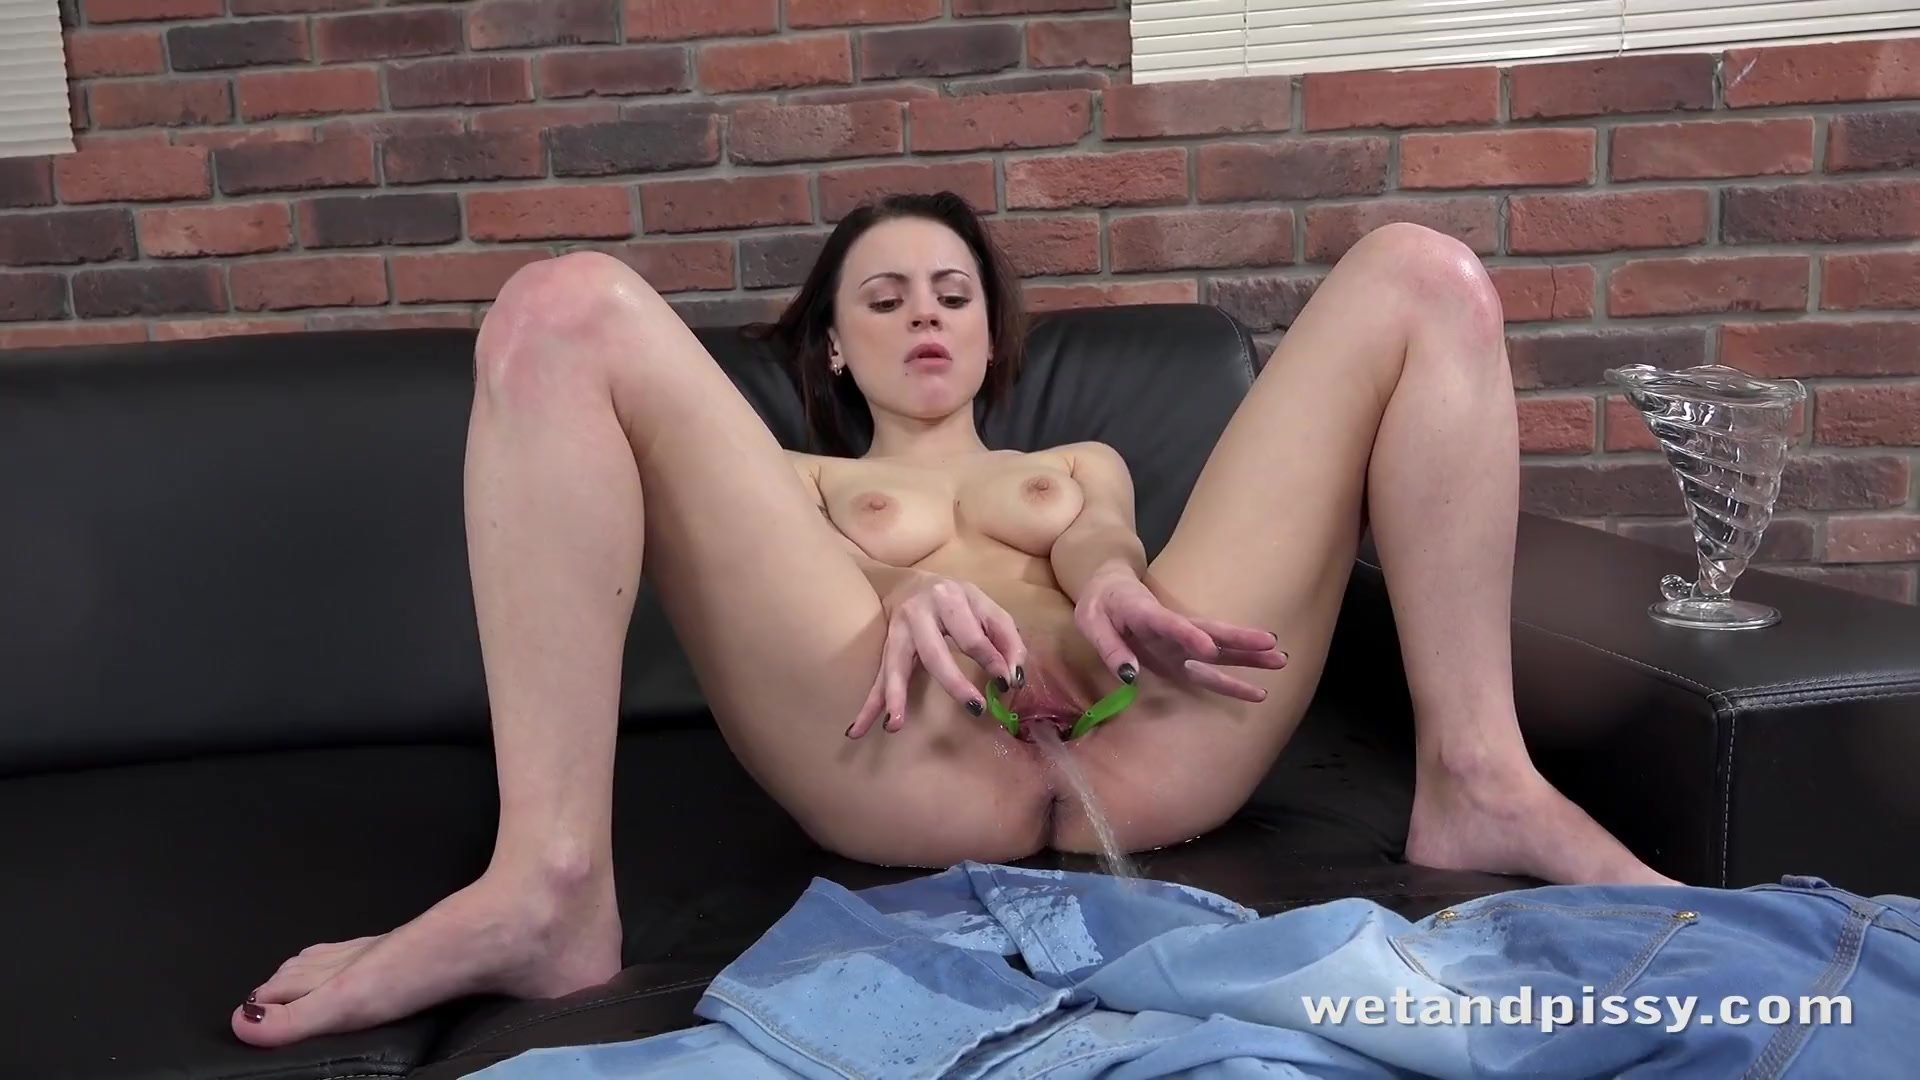 Gape/peeing girls/soaked gapes pussy toys